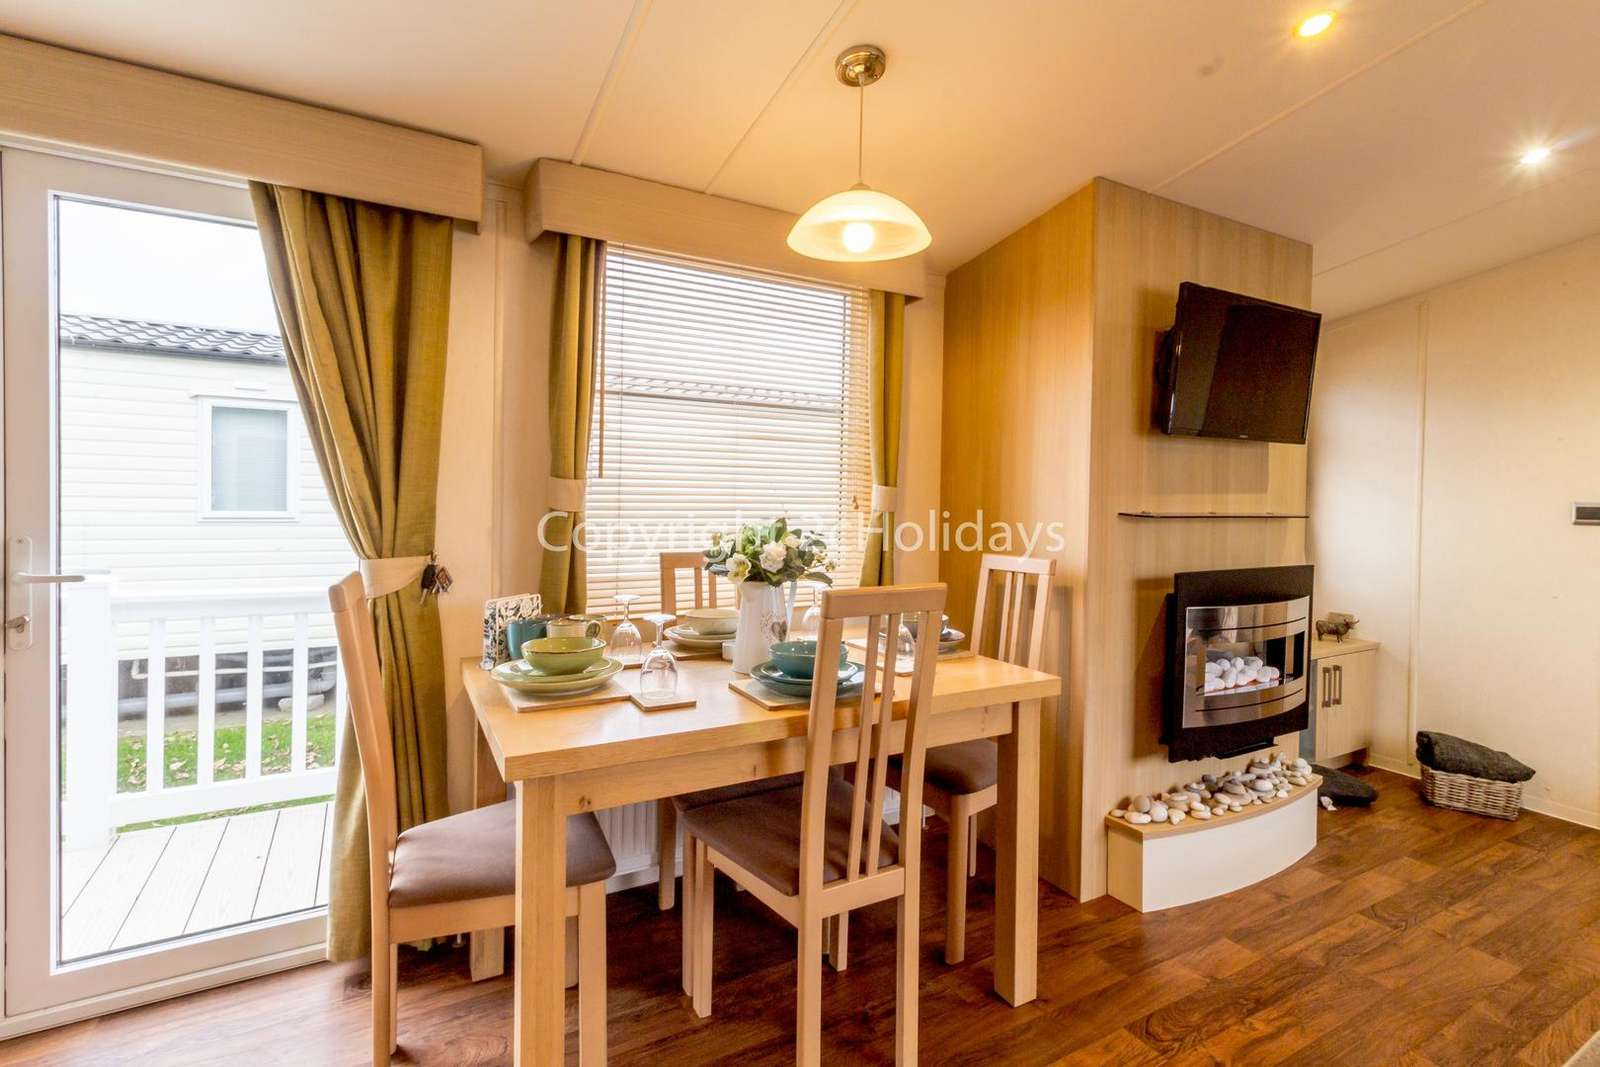 Spacious dining area ideal for family meals